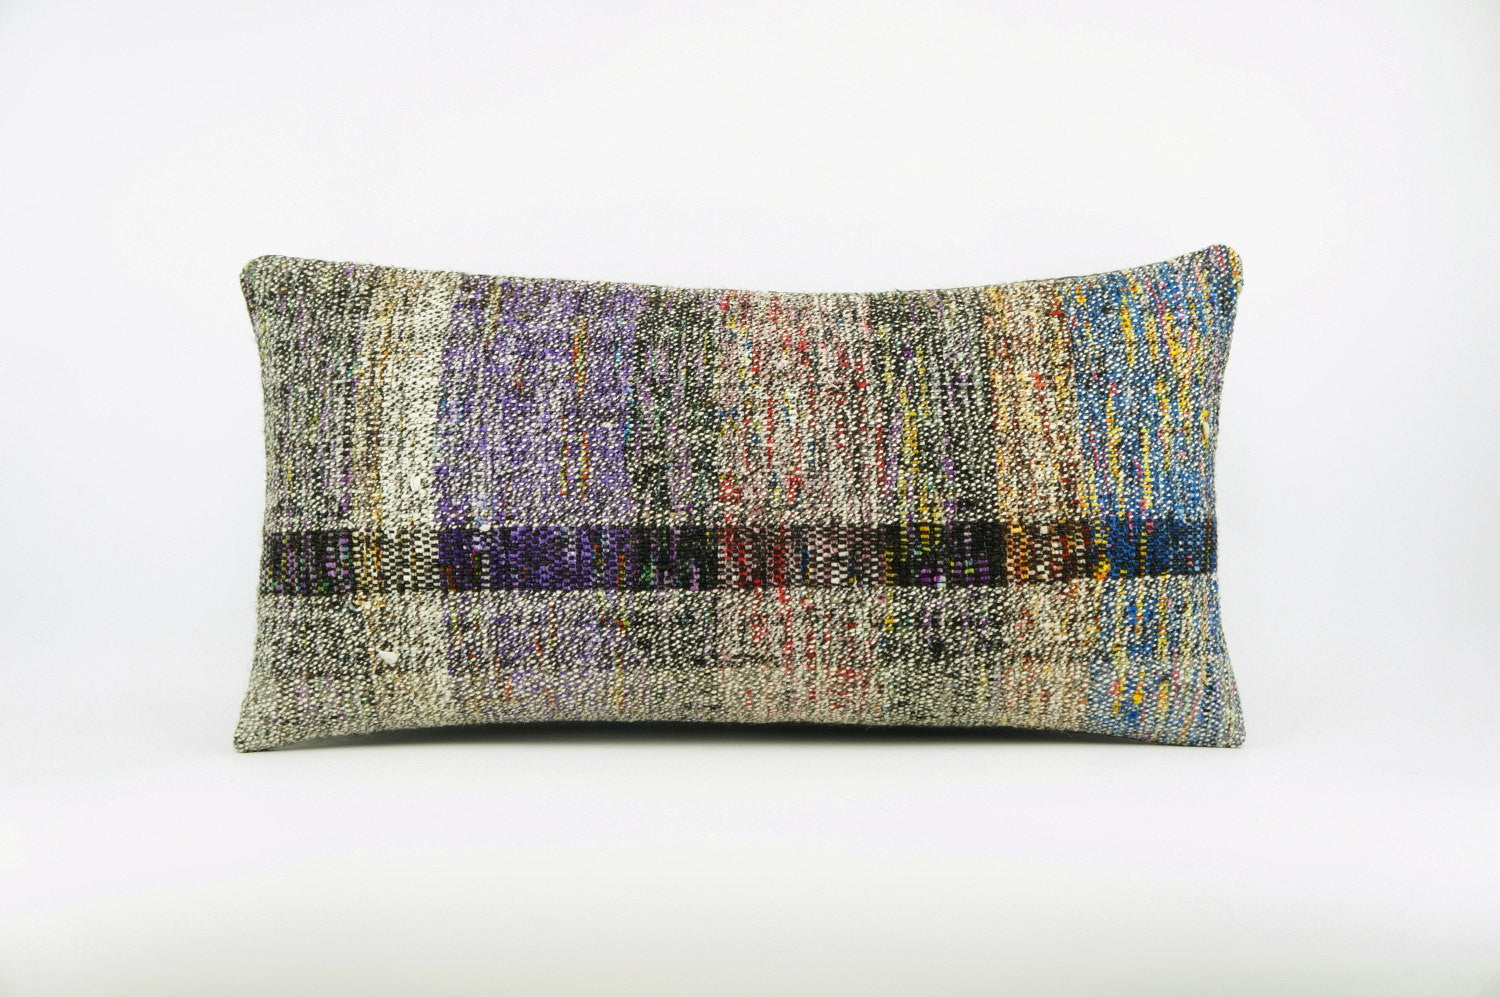 12x24  Hand Woven wool colourfull  multi colour striped decorative outdoor  Kilim Pillow cushion 1672 - kilimpillowstore  - 1